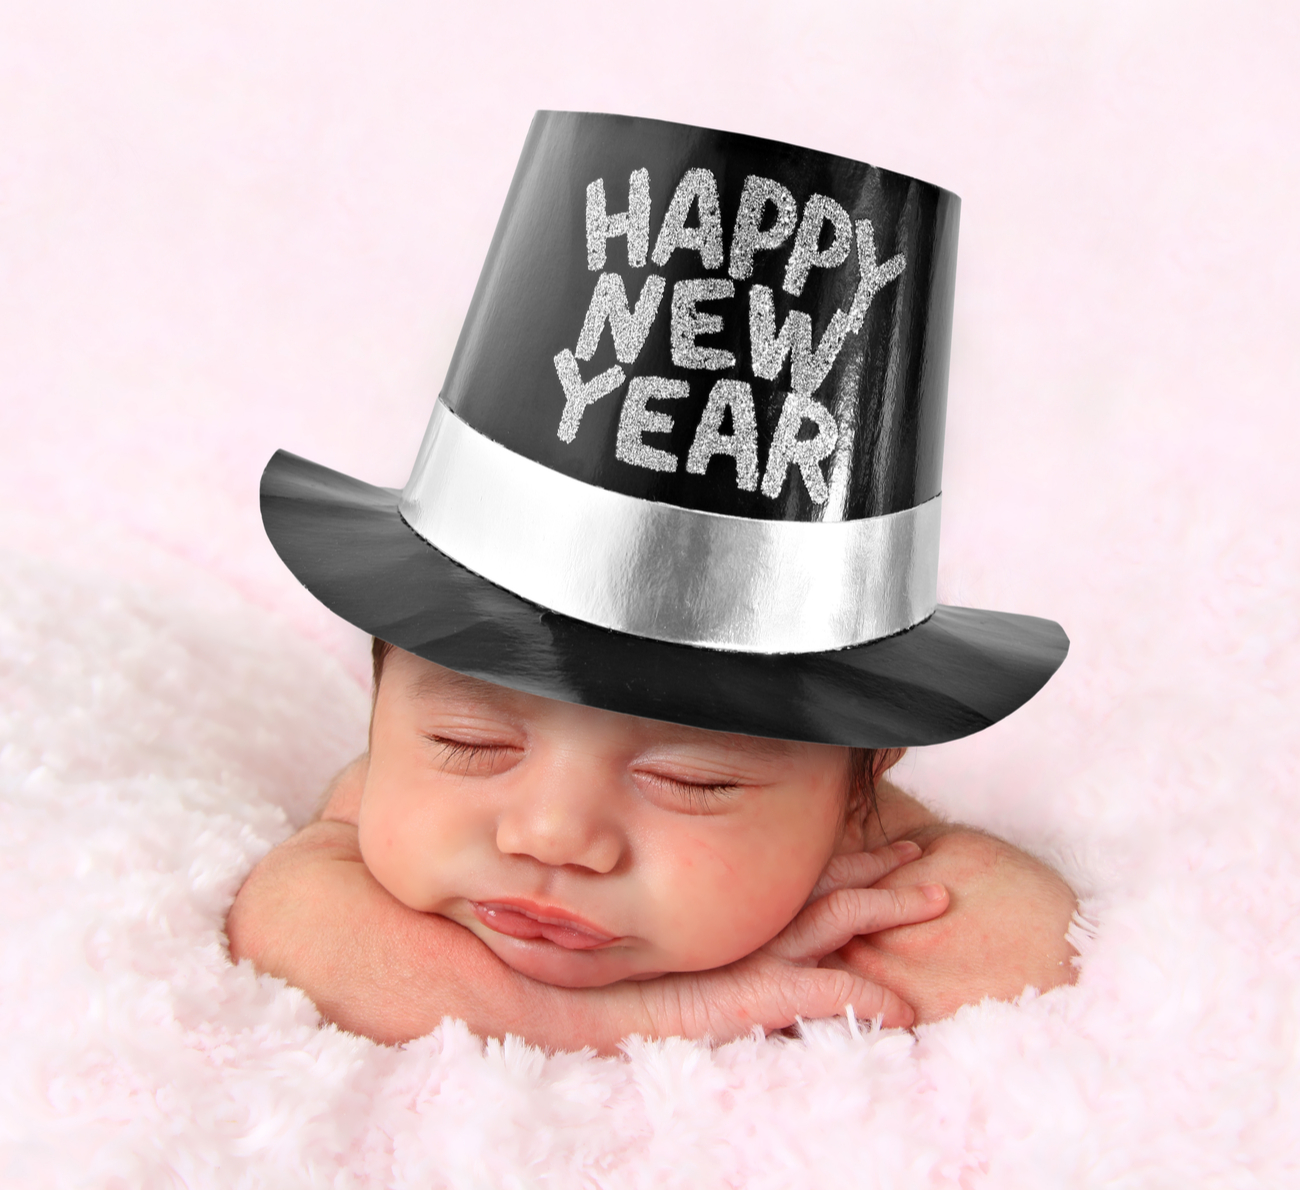 baby on new year